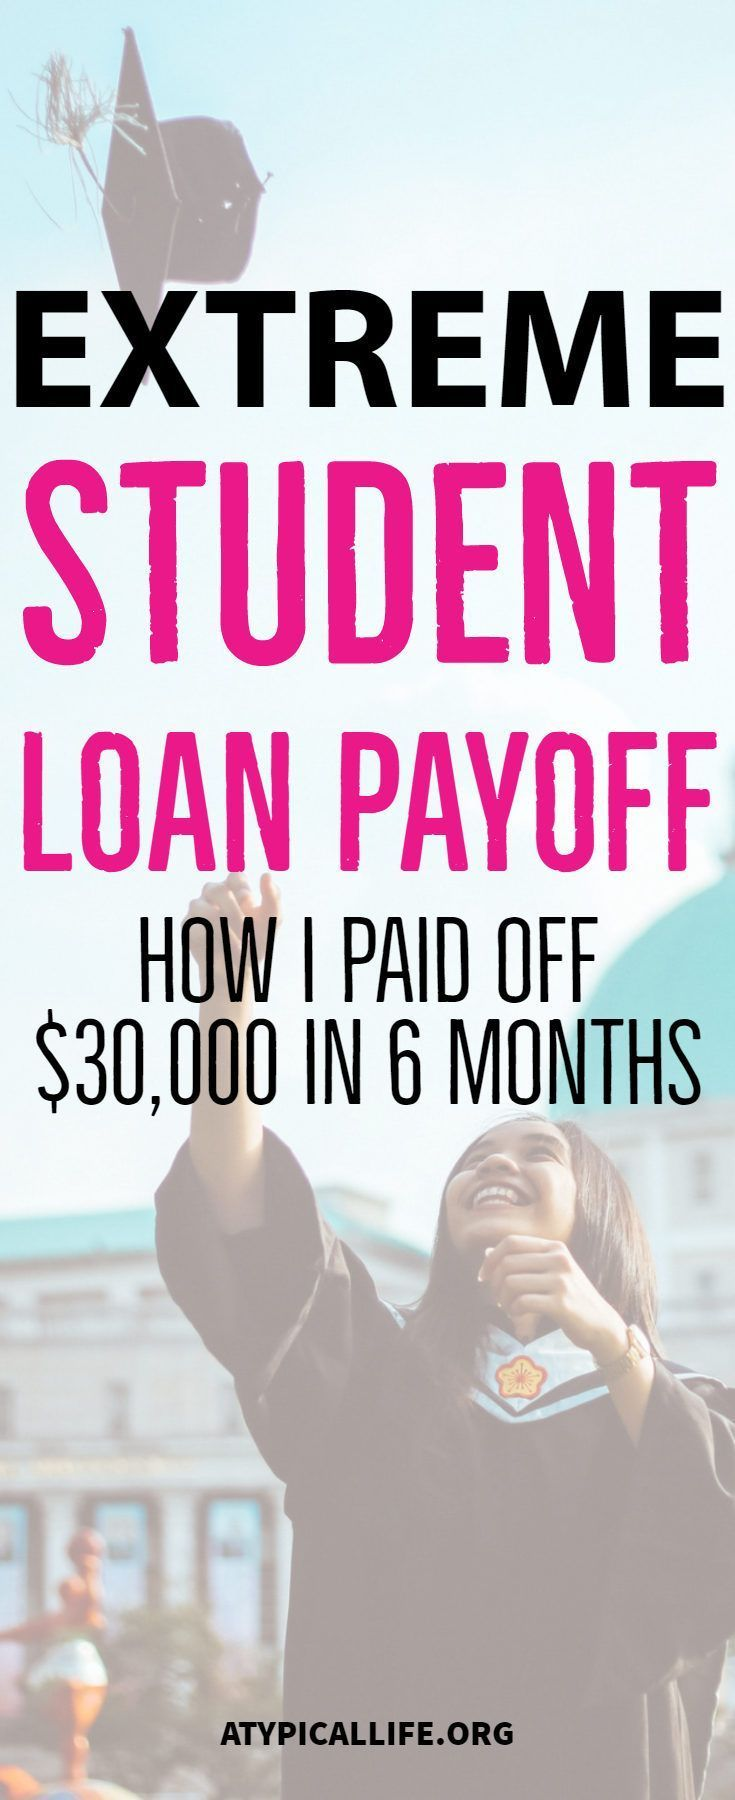 Get 35 000 Loan Now With Total Personal Loan For More Detail Visit Our Website Student Loan Debt Student Loans Loan Payoff